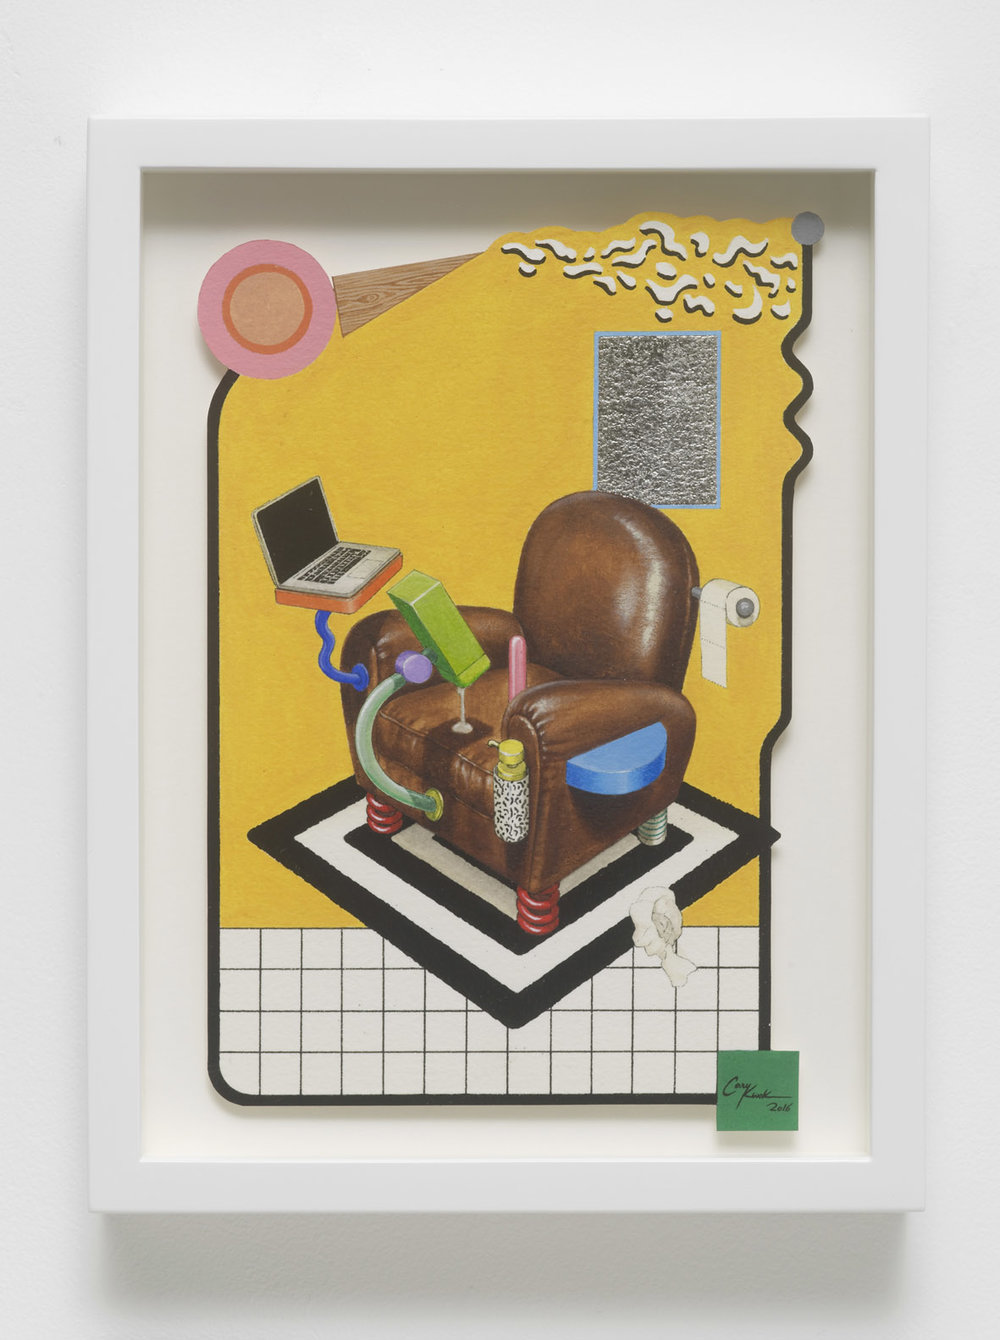 Pimp My Vice (Sottsass Style) 2016 Ink, Acrylic and Palladium Leaf on paper 22.5 x 15.5 cm / 8.8 x 6.1 in Unframed 26.8 x 20.5 x 4 cm / 10.5 x 8.1 x 1.6 in Framed